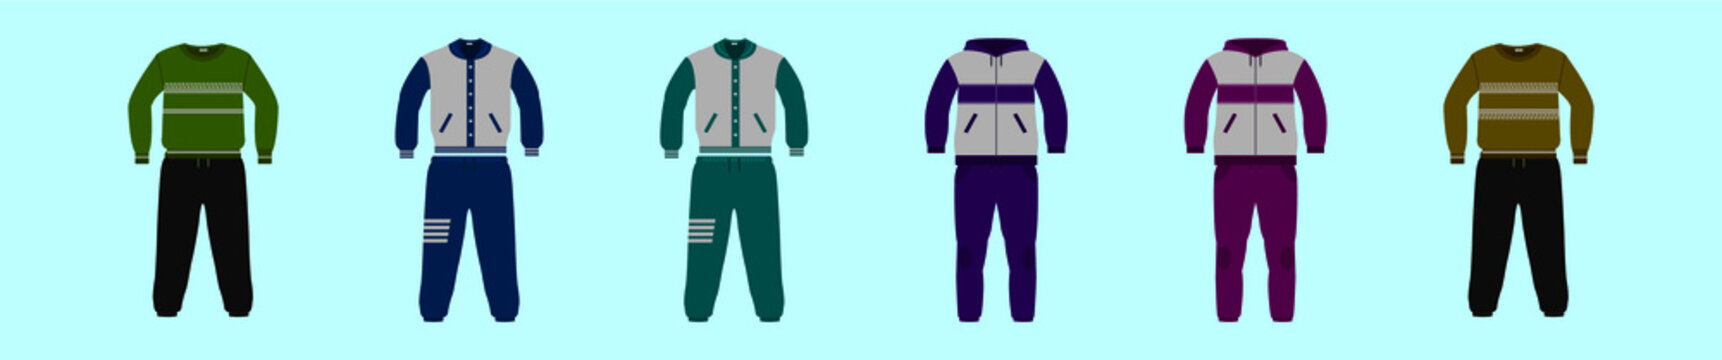 set of sweat pant cartoon icon design template with various models. vector illustration isolated on blue background